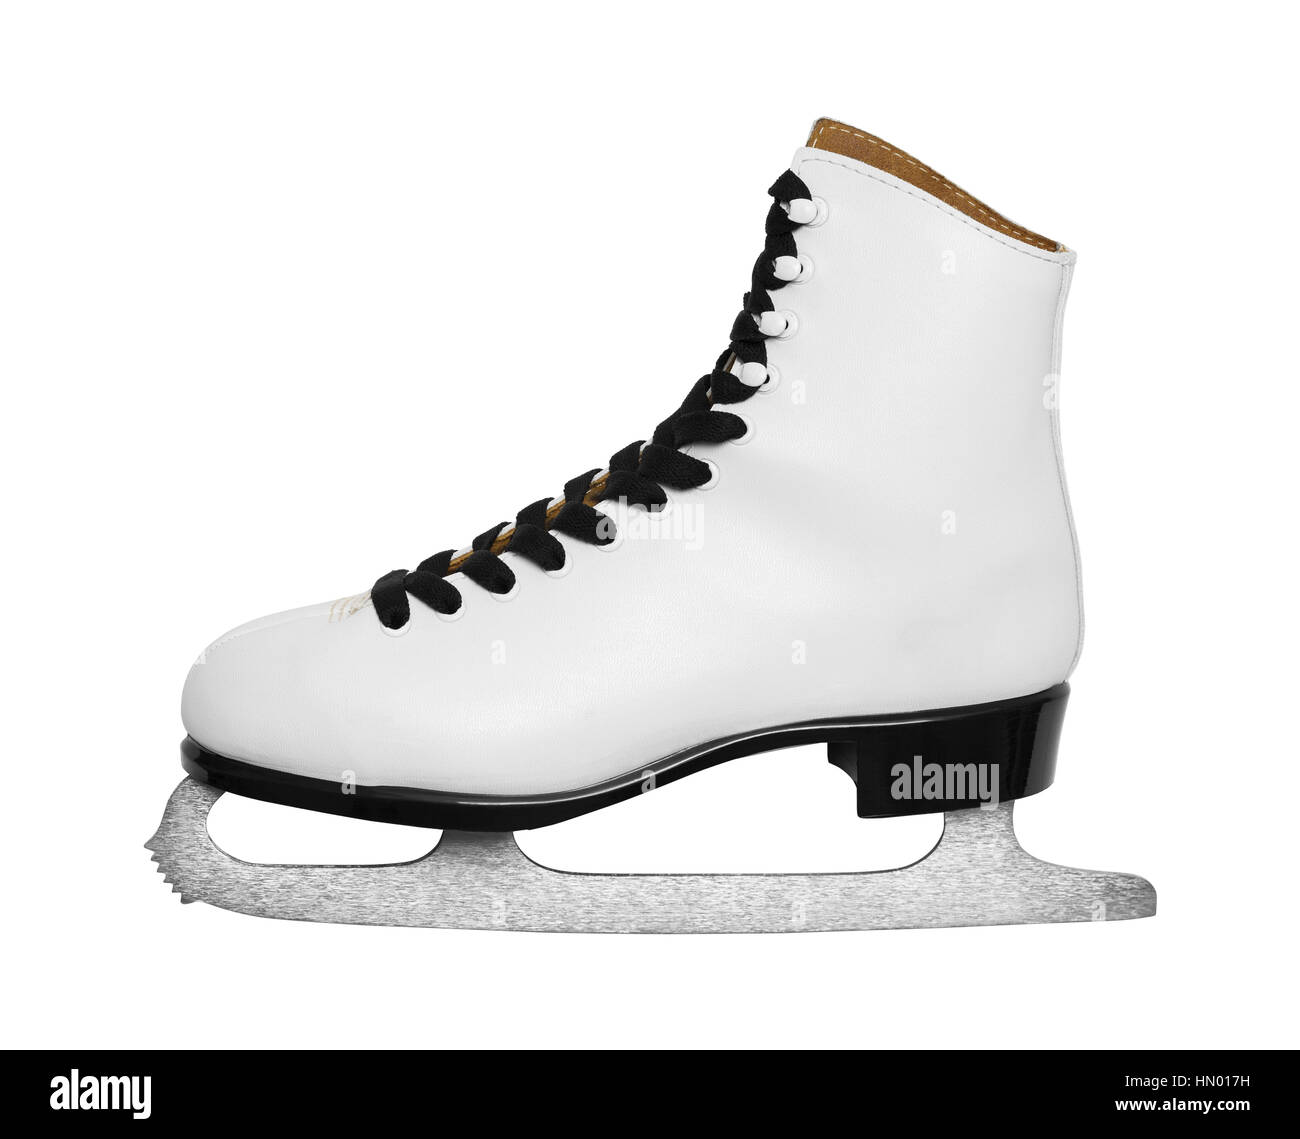 SIngle Ice Skate Side View Cut Out on White. - Stock Image